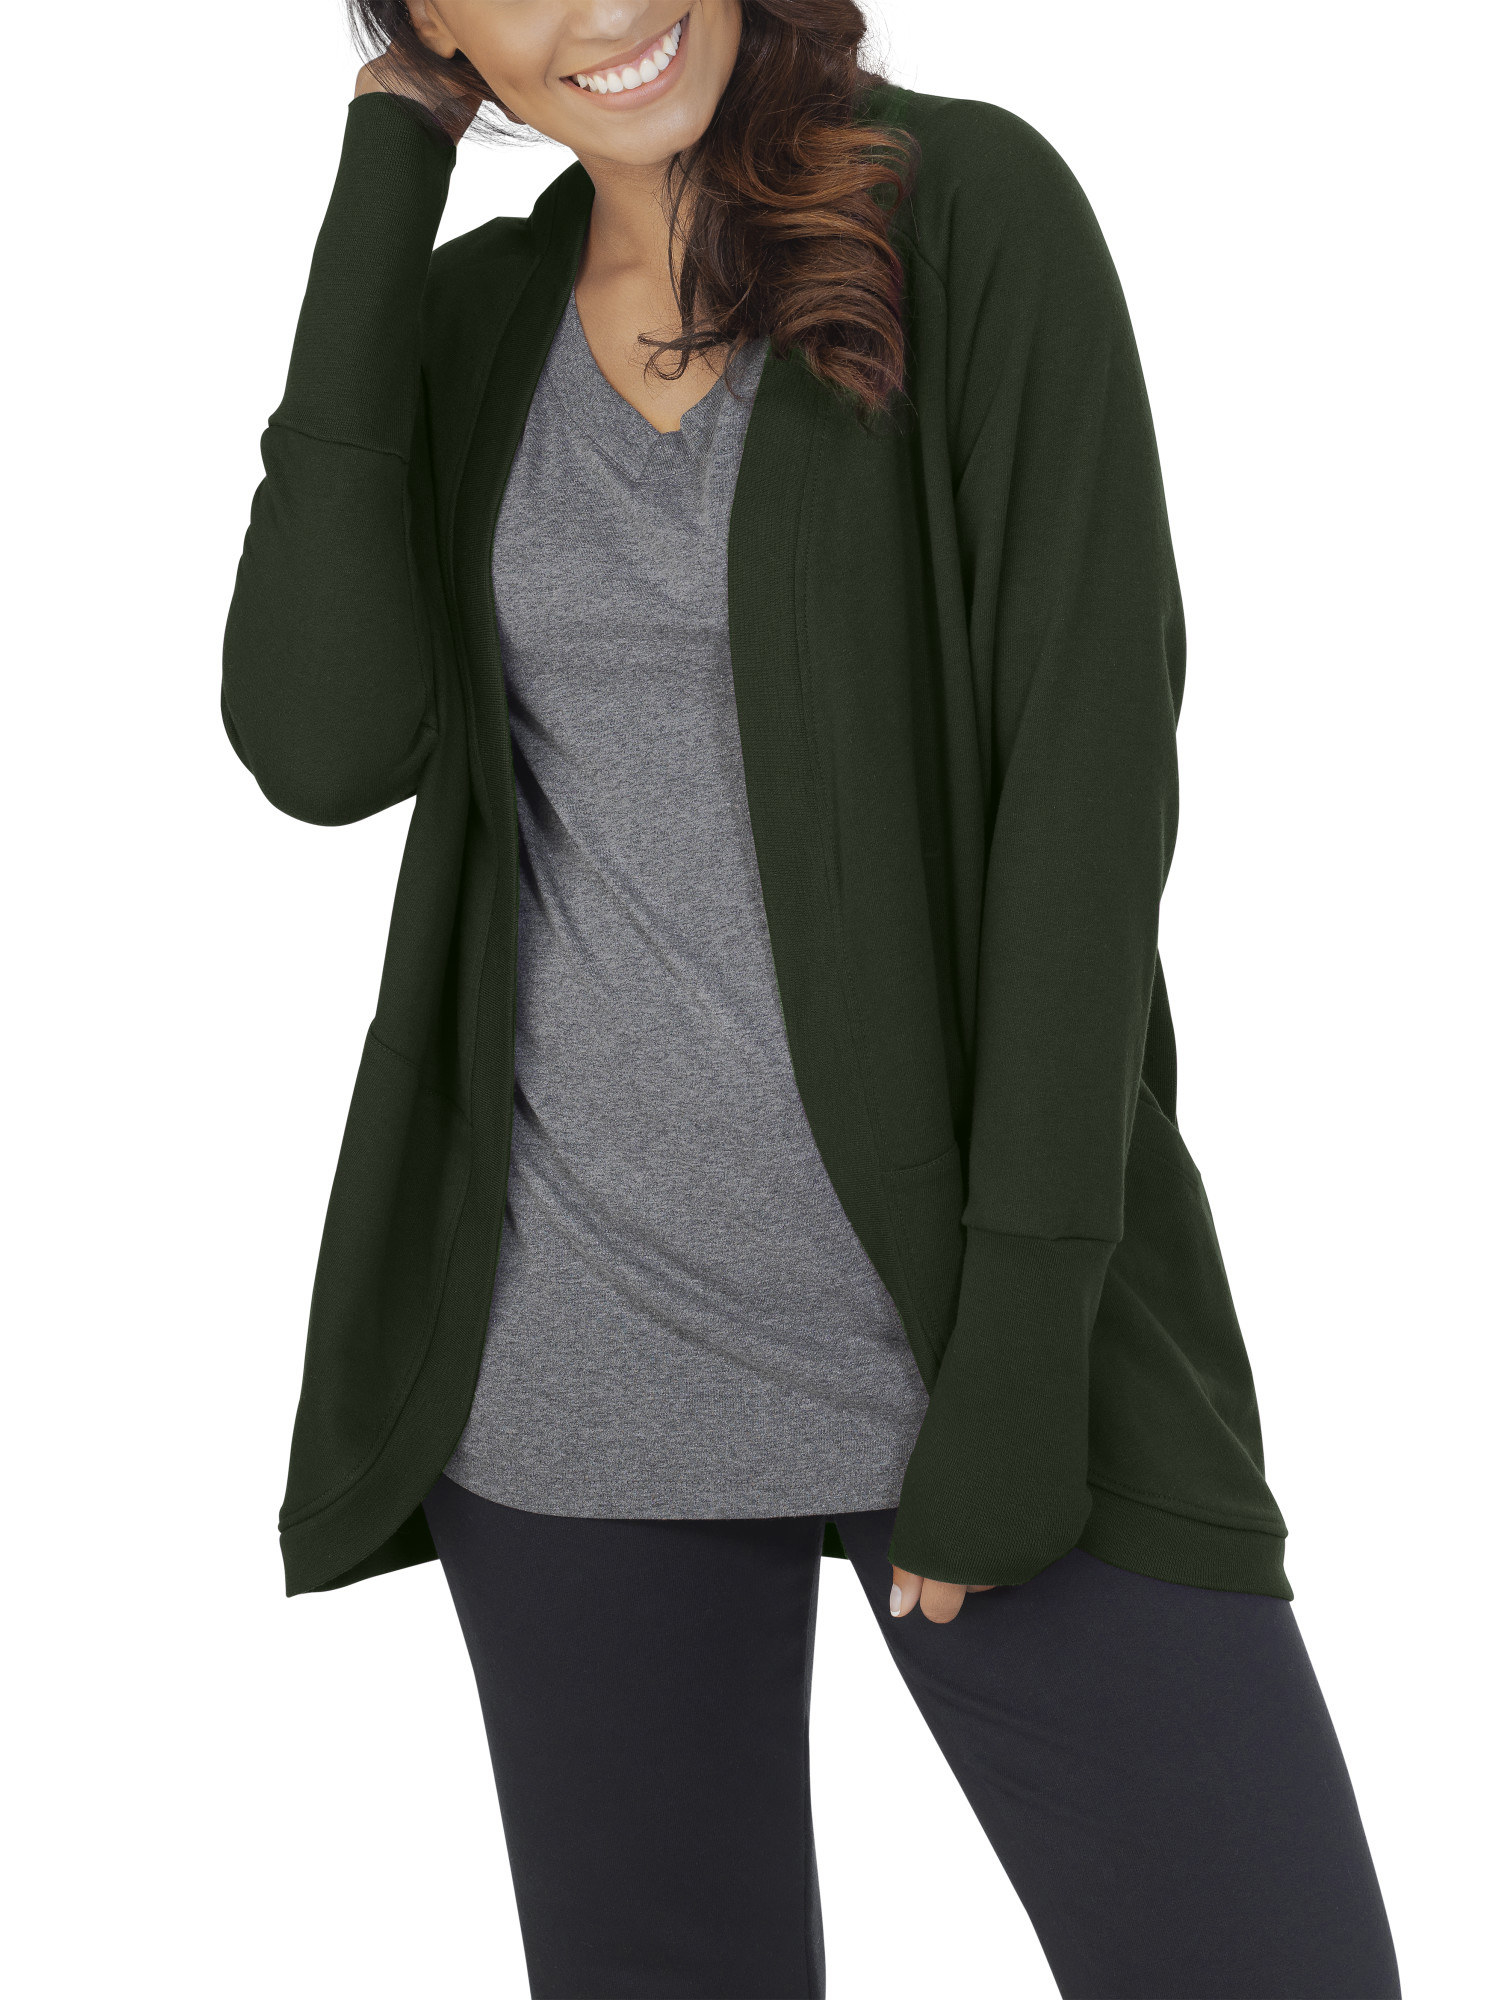 Model wearing green cardigan.